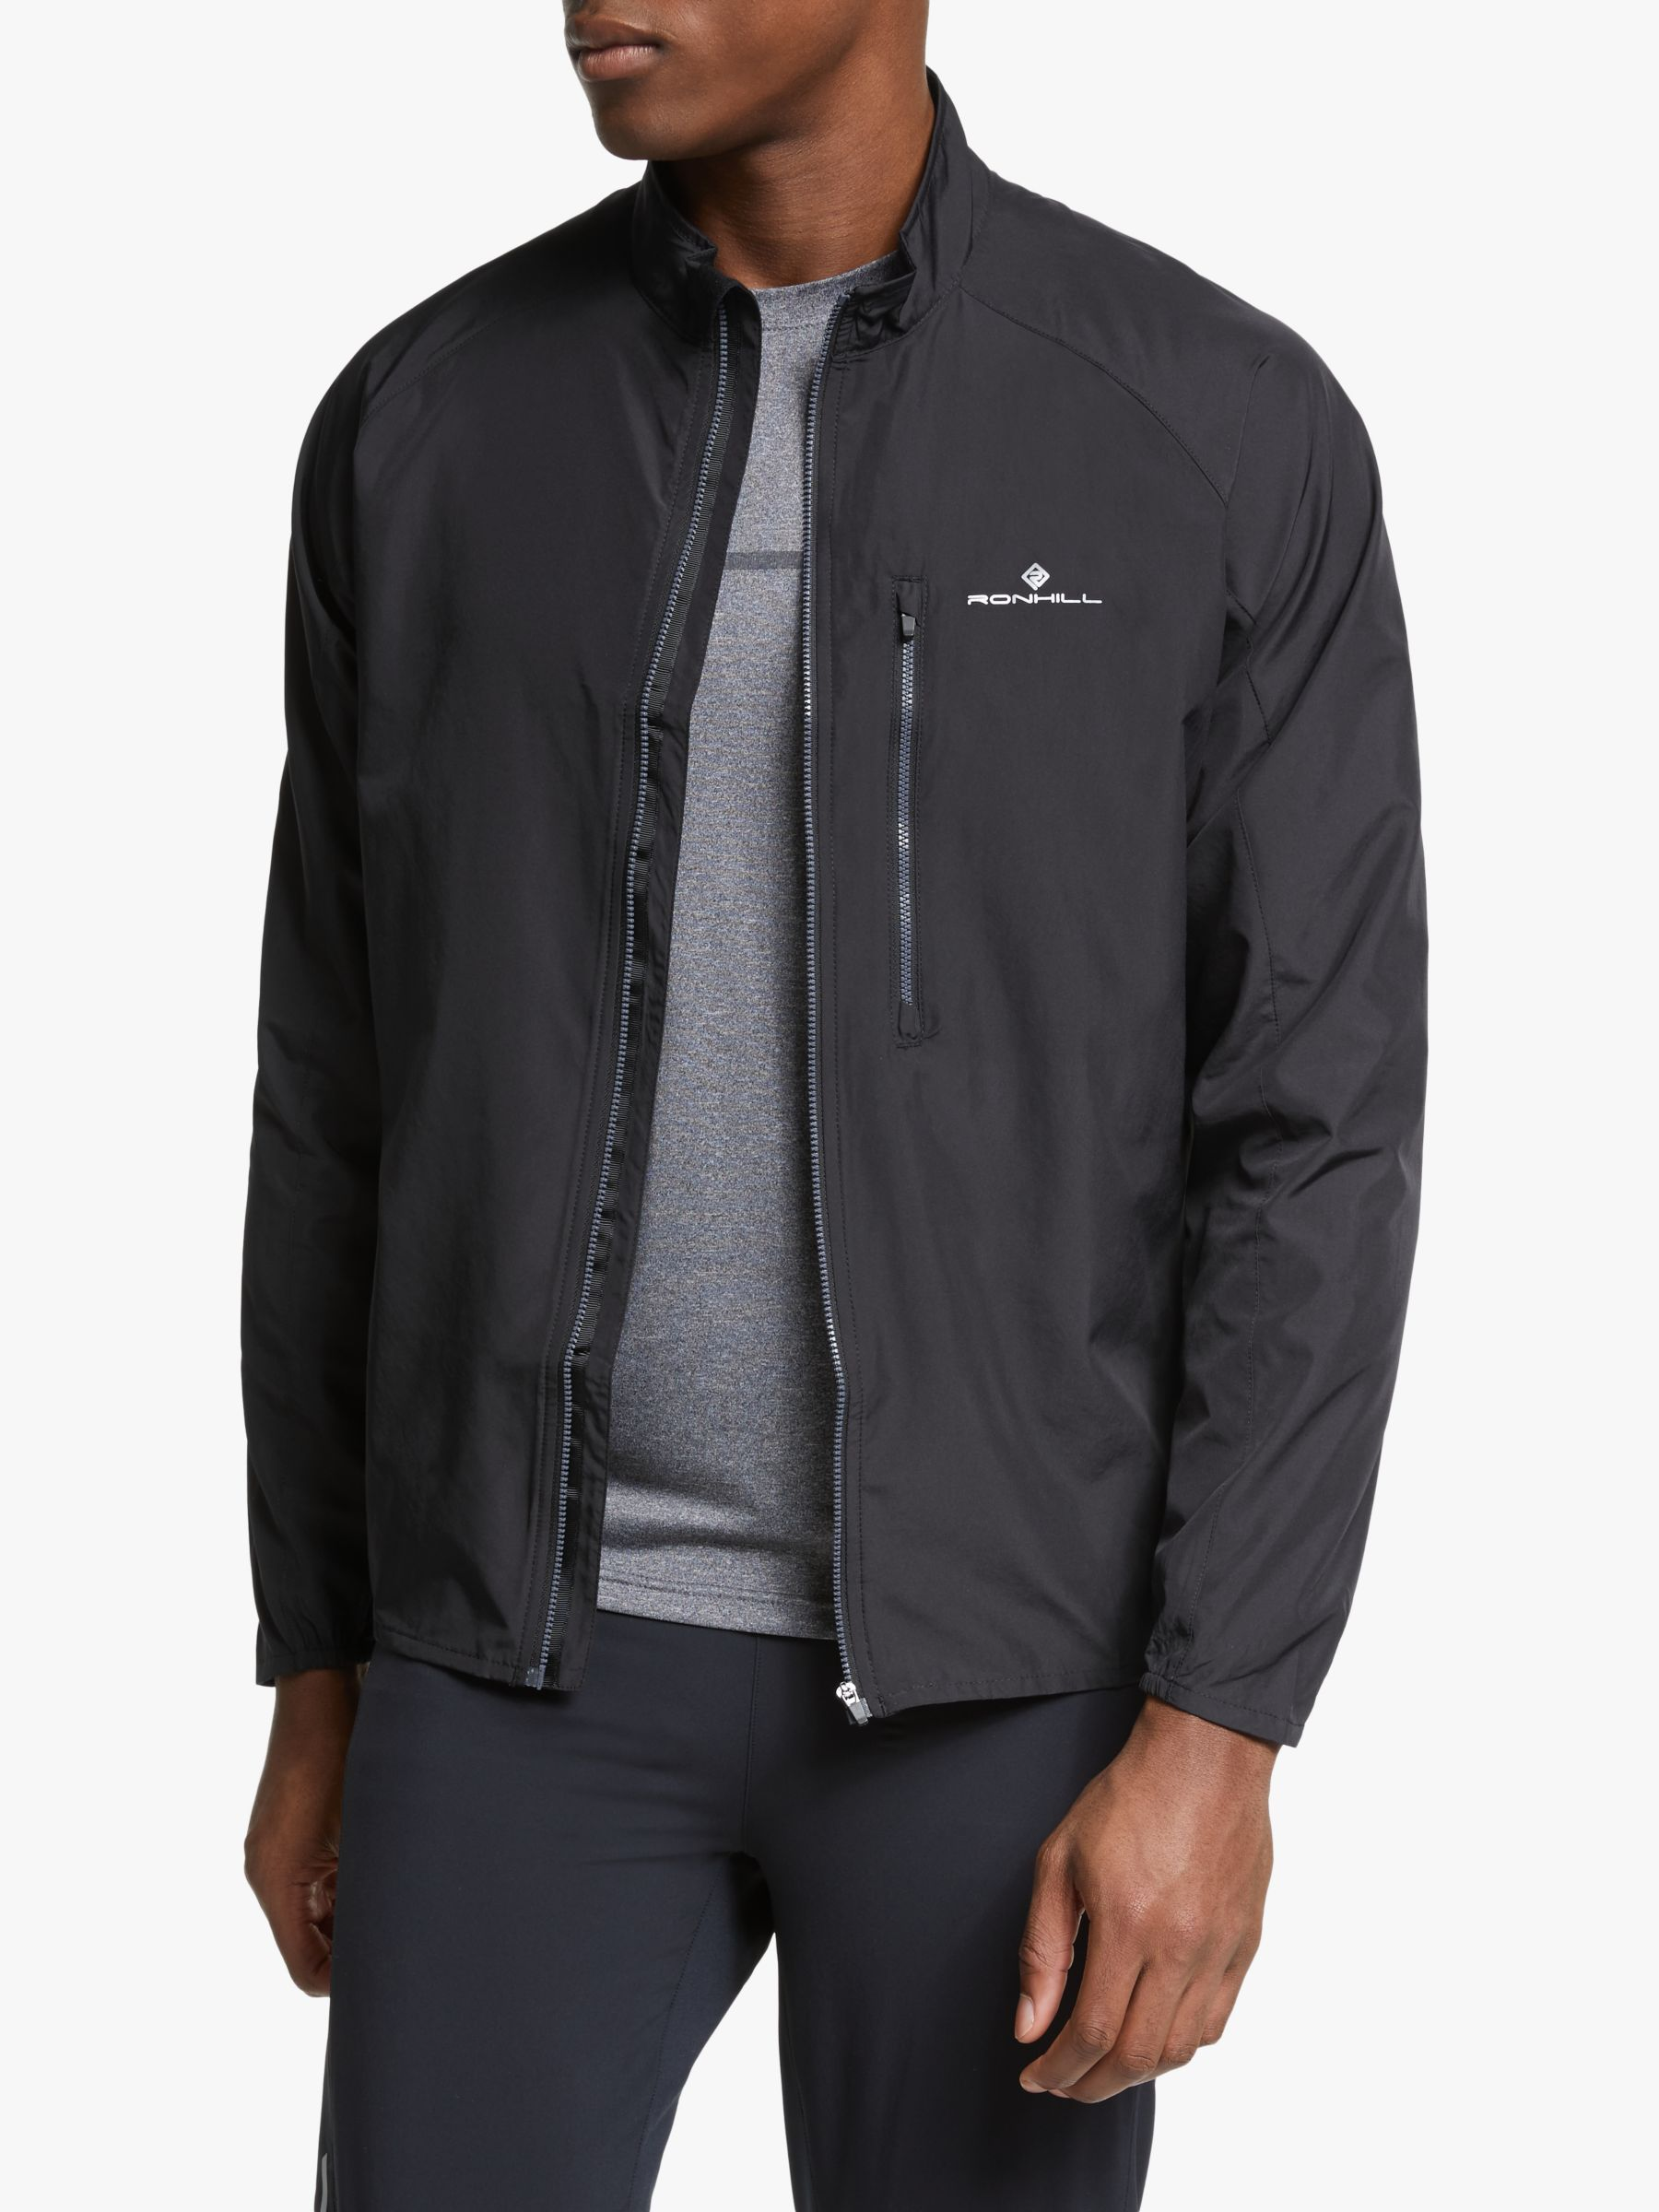 Ronhill Ronhill Everyday Men's Running Jacket, All Black